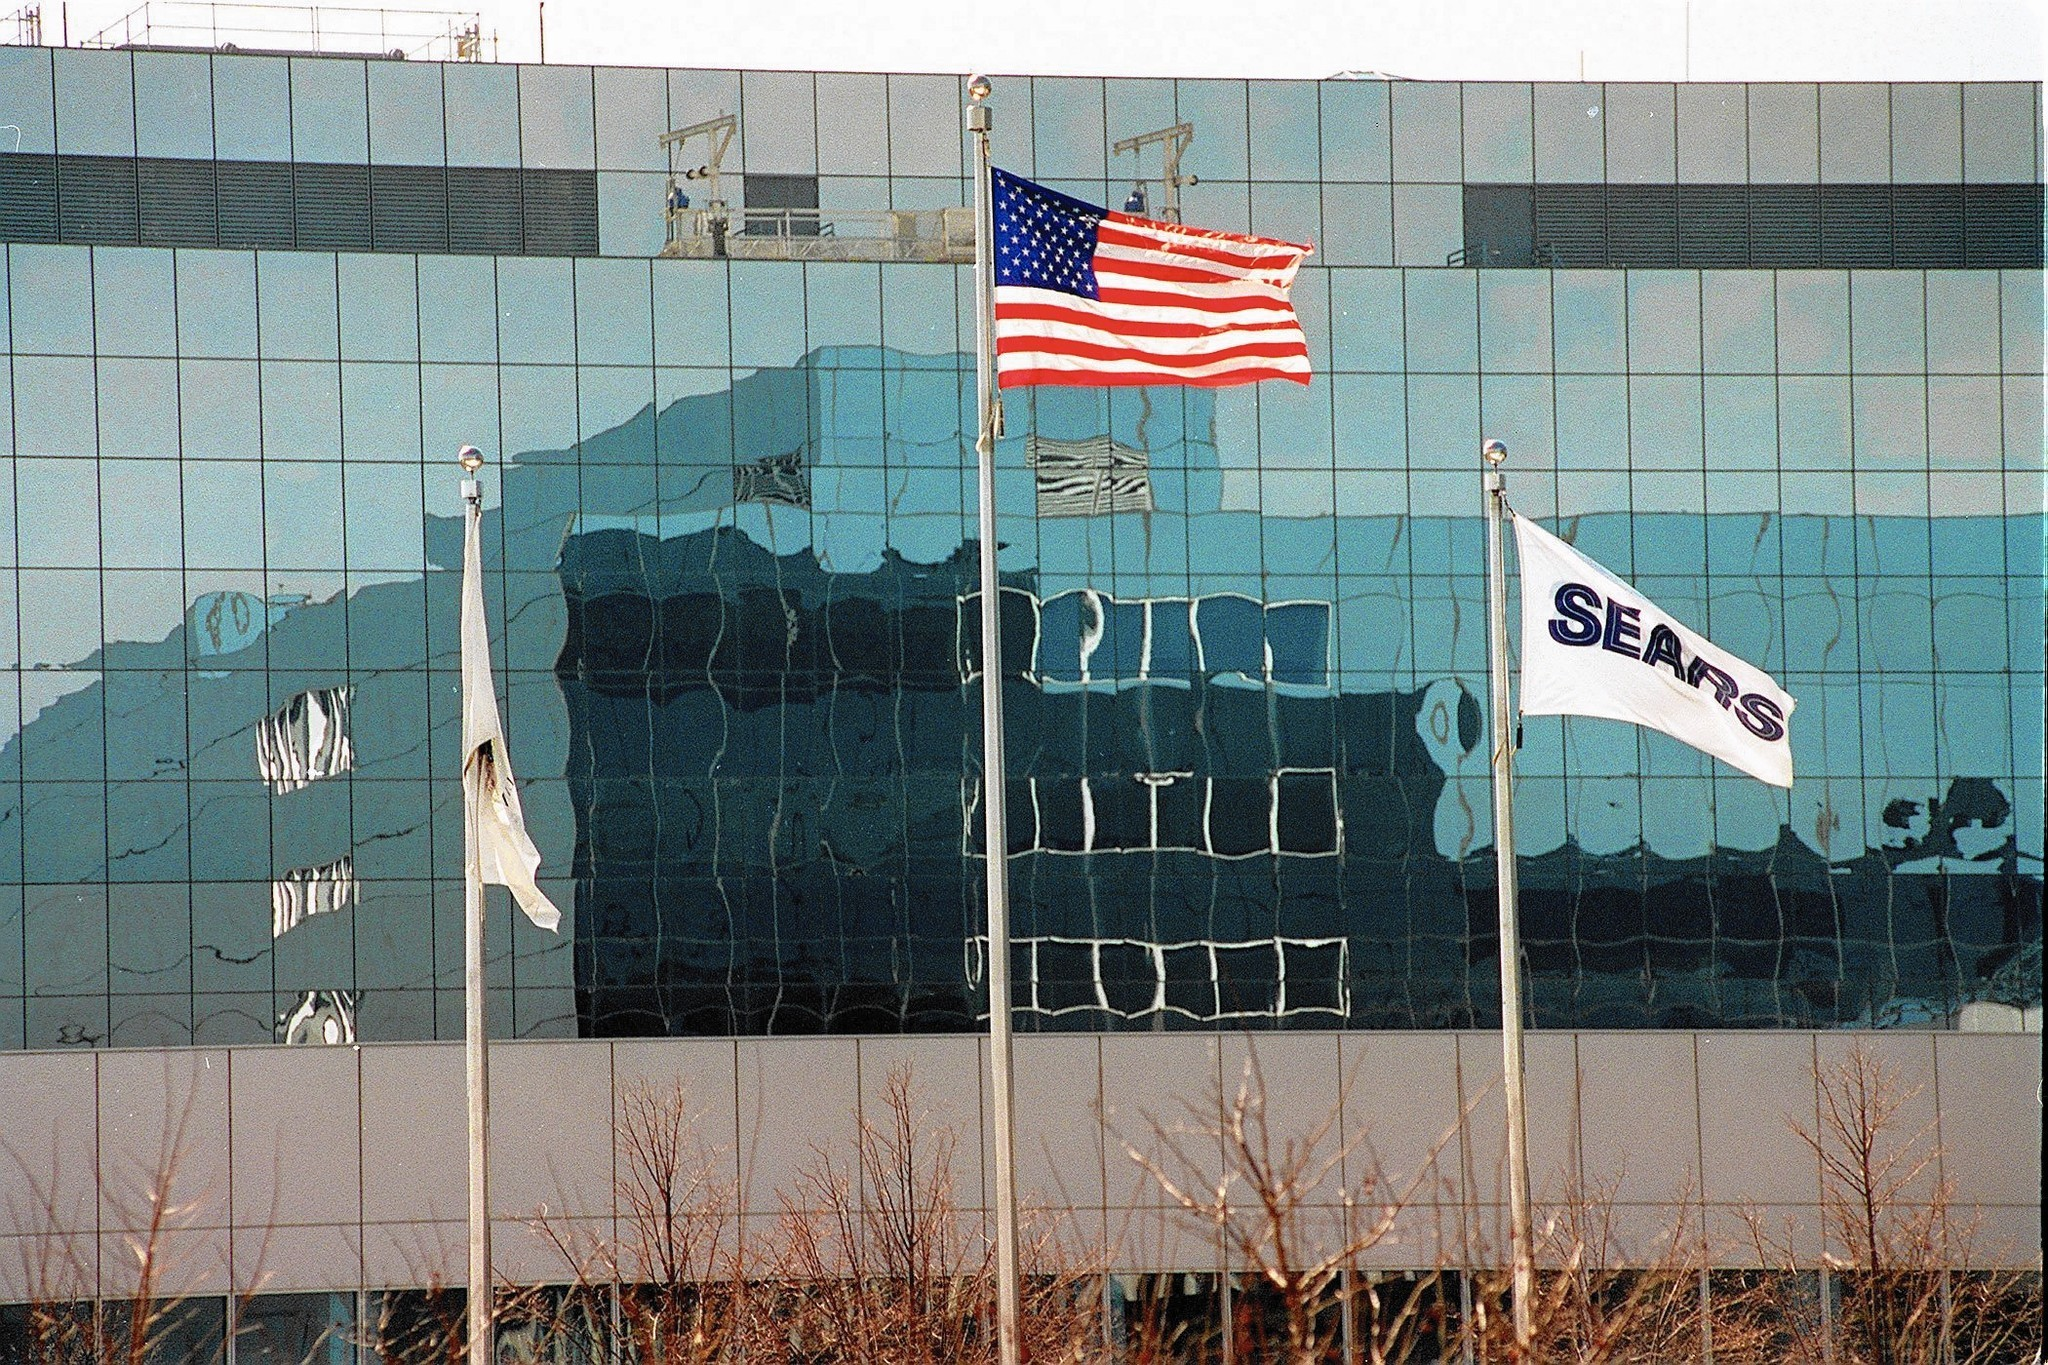 Sears loses money again but CEO sees hope in smaller decline